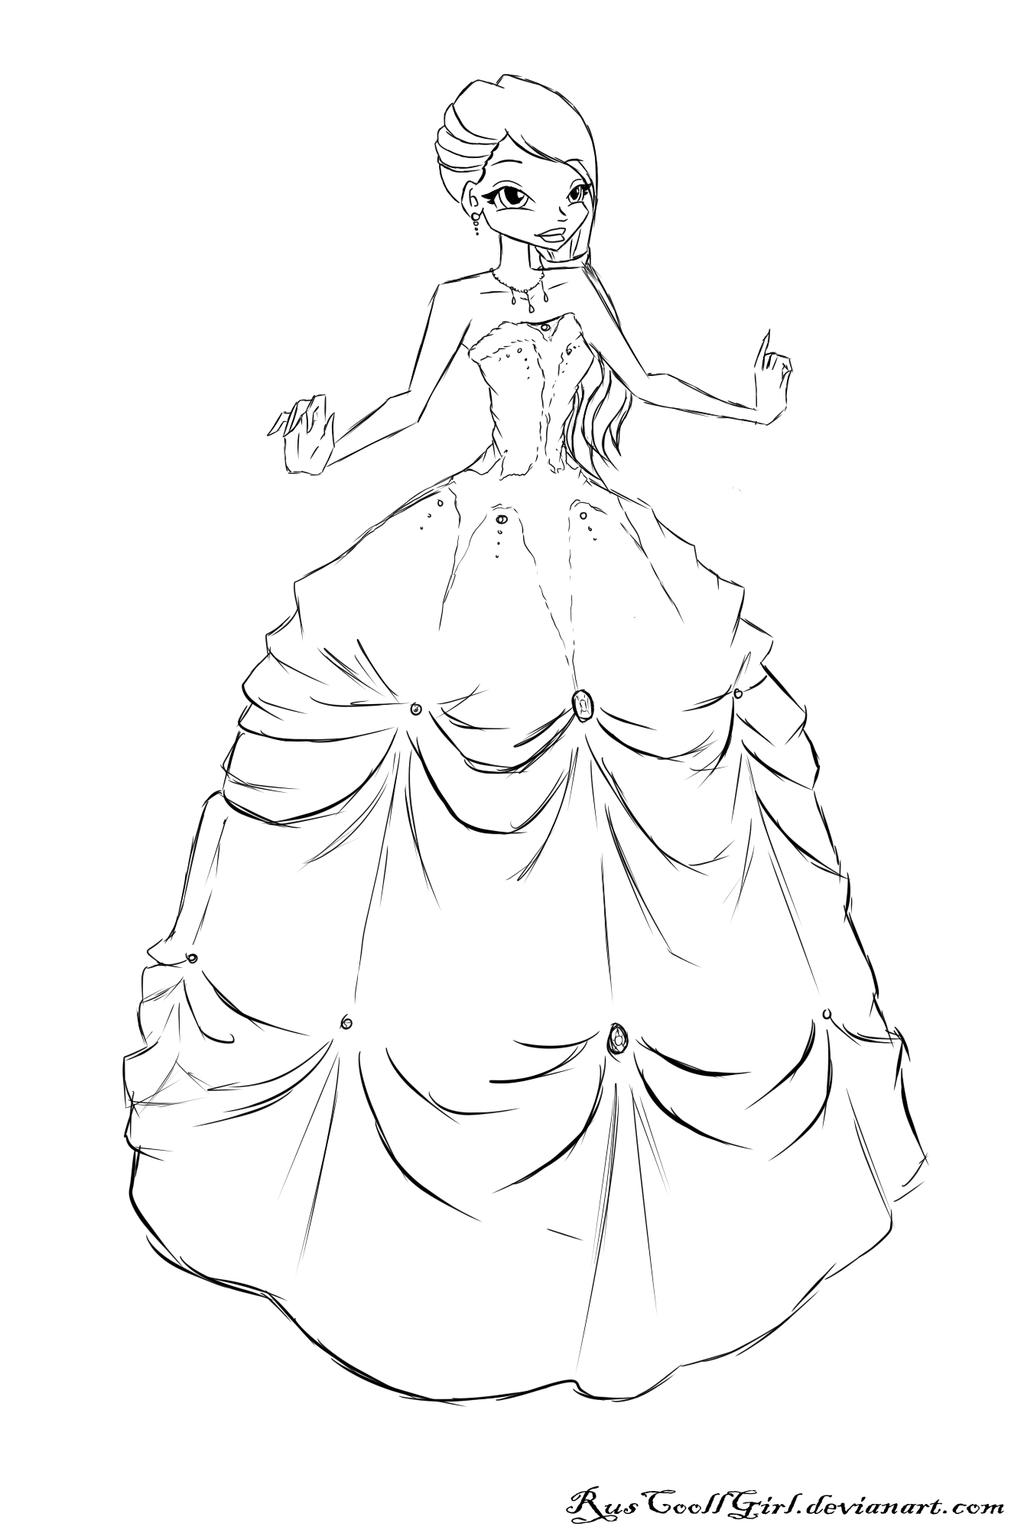 COM Sketch Breanna Ball Gown By RusCoollGirl On DeviantArt